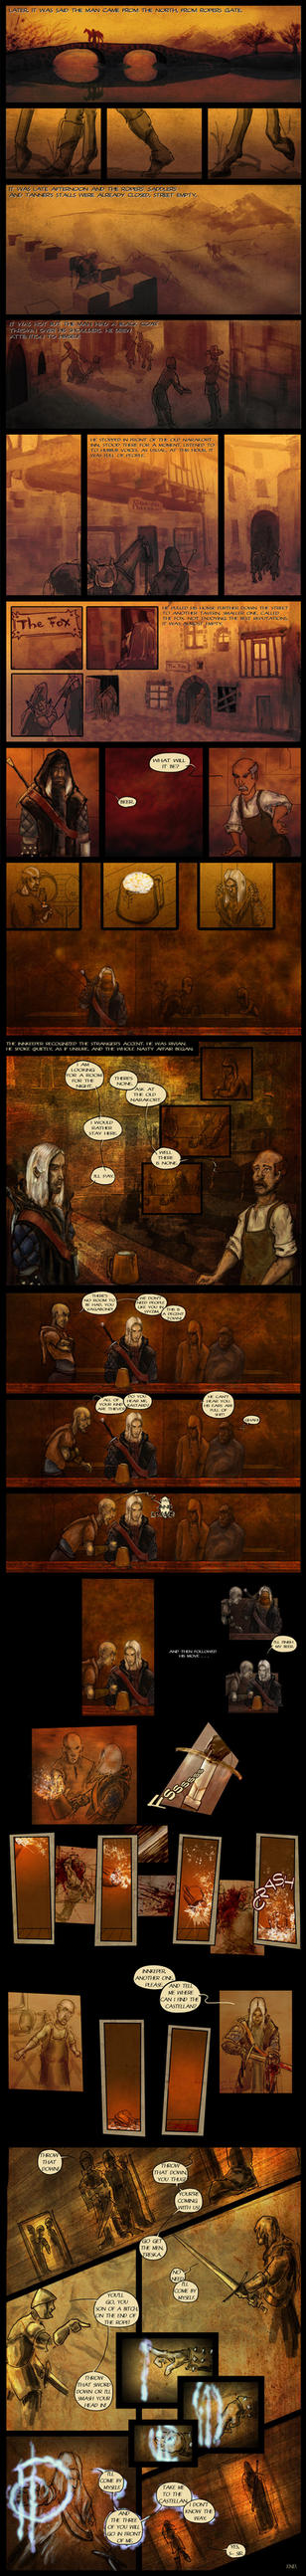 The Witcher. Short story. by Flasko